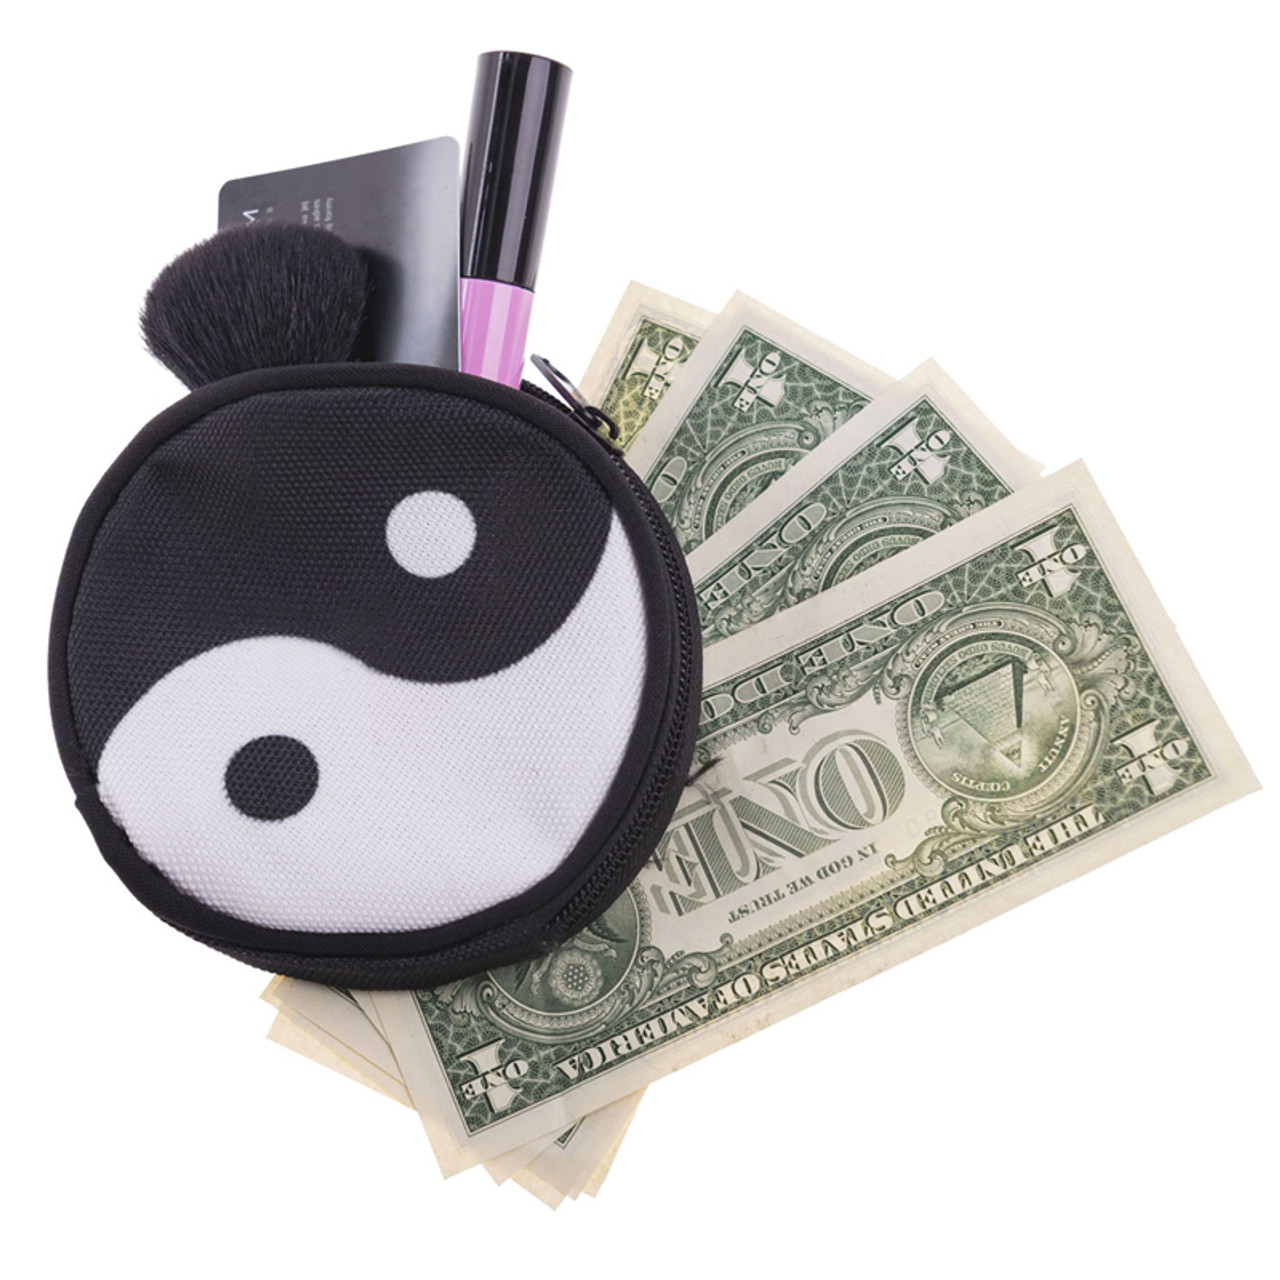 Yin Yang Round Graphic Print Coin Purse - 18 Styles shown with cash, card, and lip gloss sticking out.